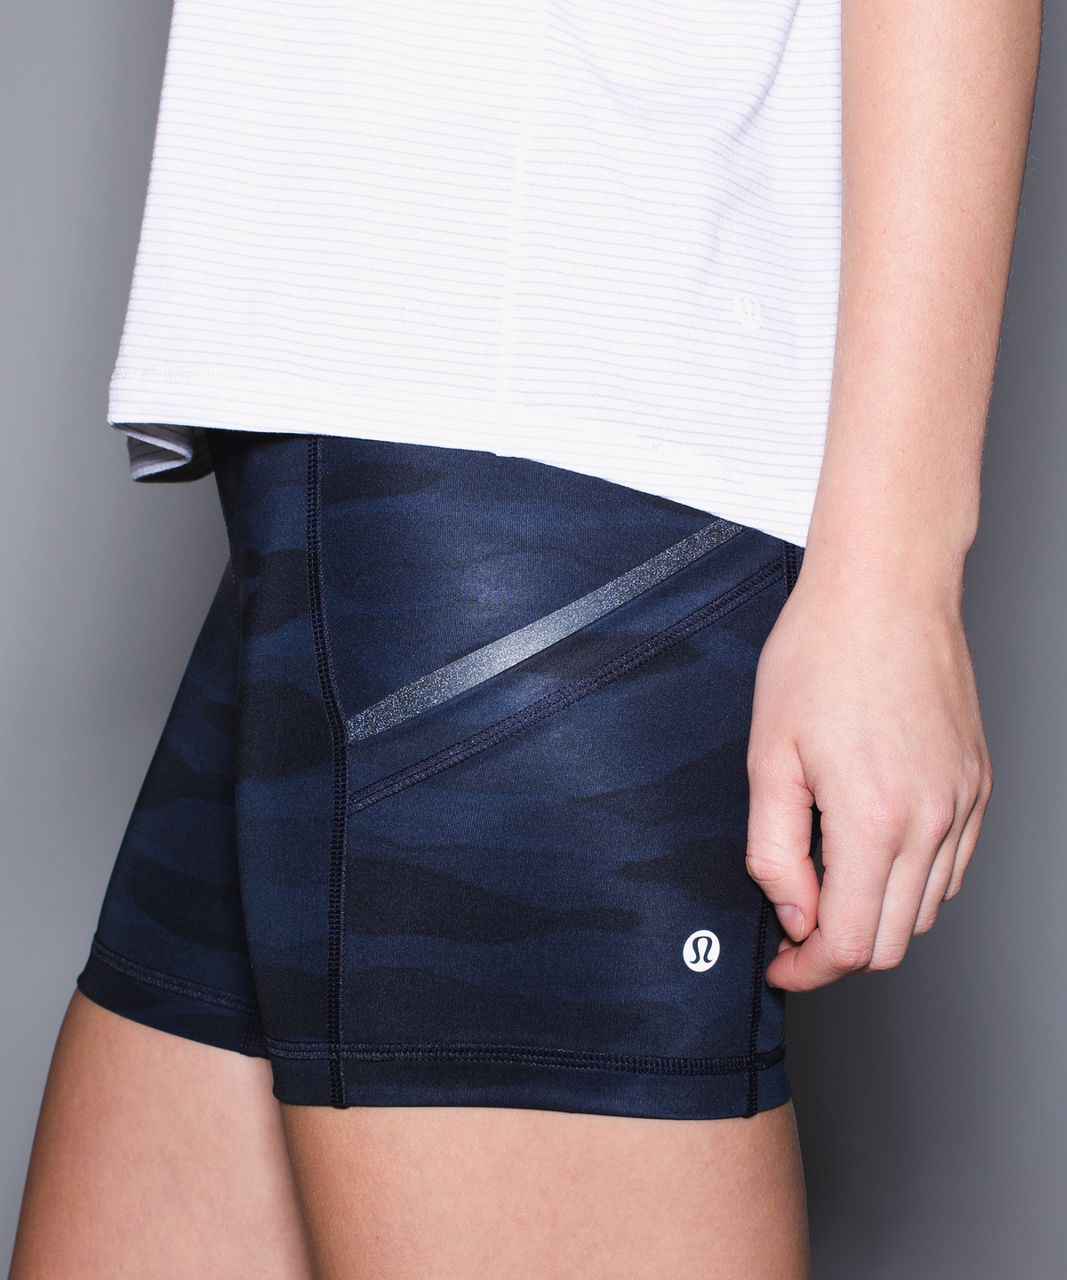 Lululemon What The Sport Short - Mini Coast Camo Deep Navy Black